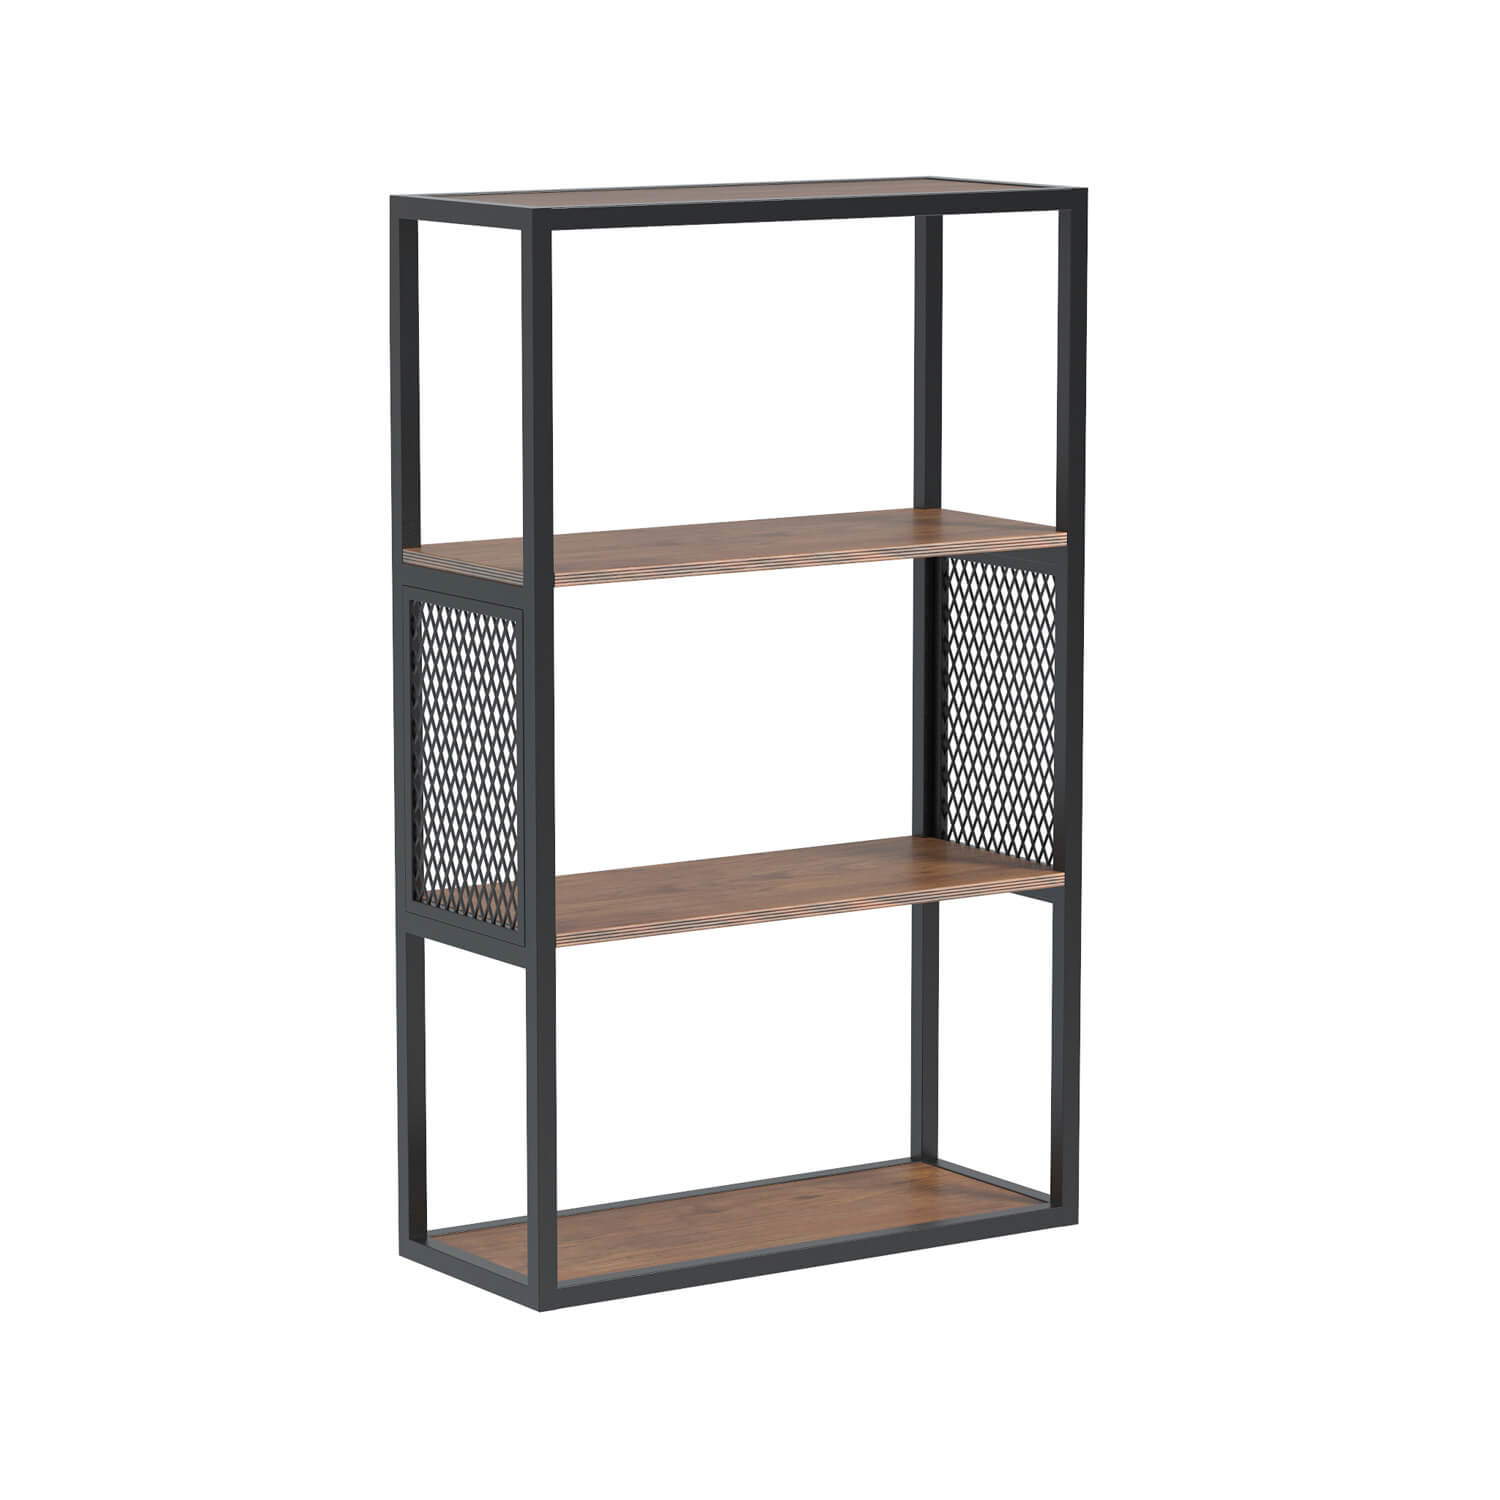 Mirplay Producten Kast Wally Garage Collection